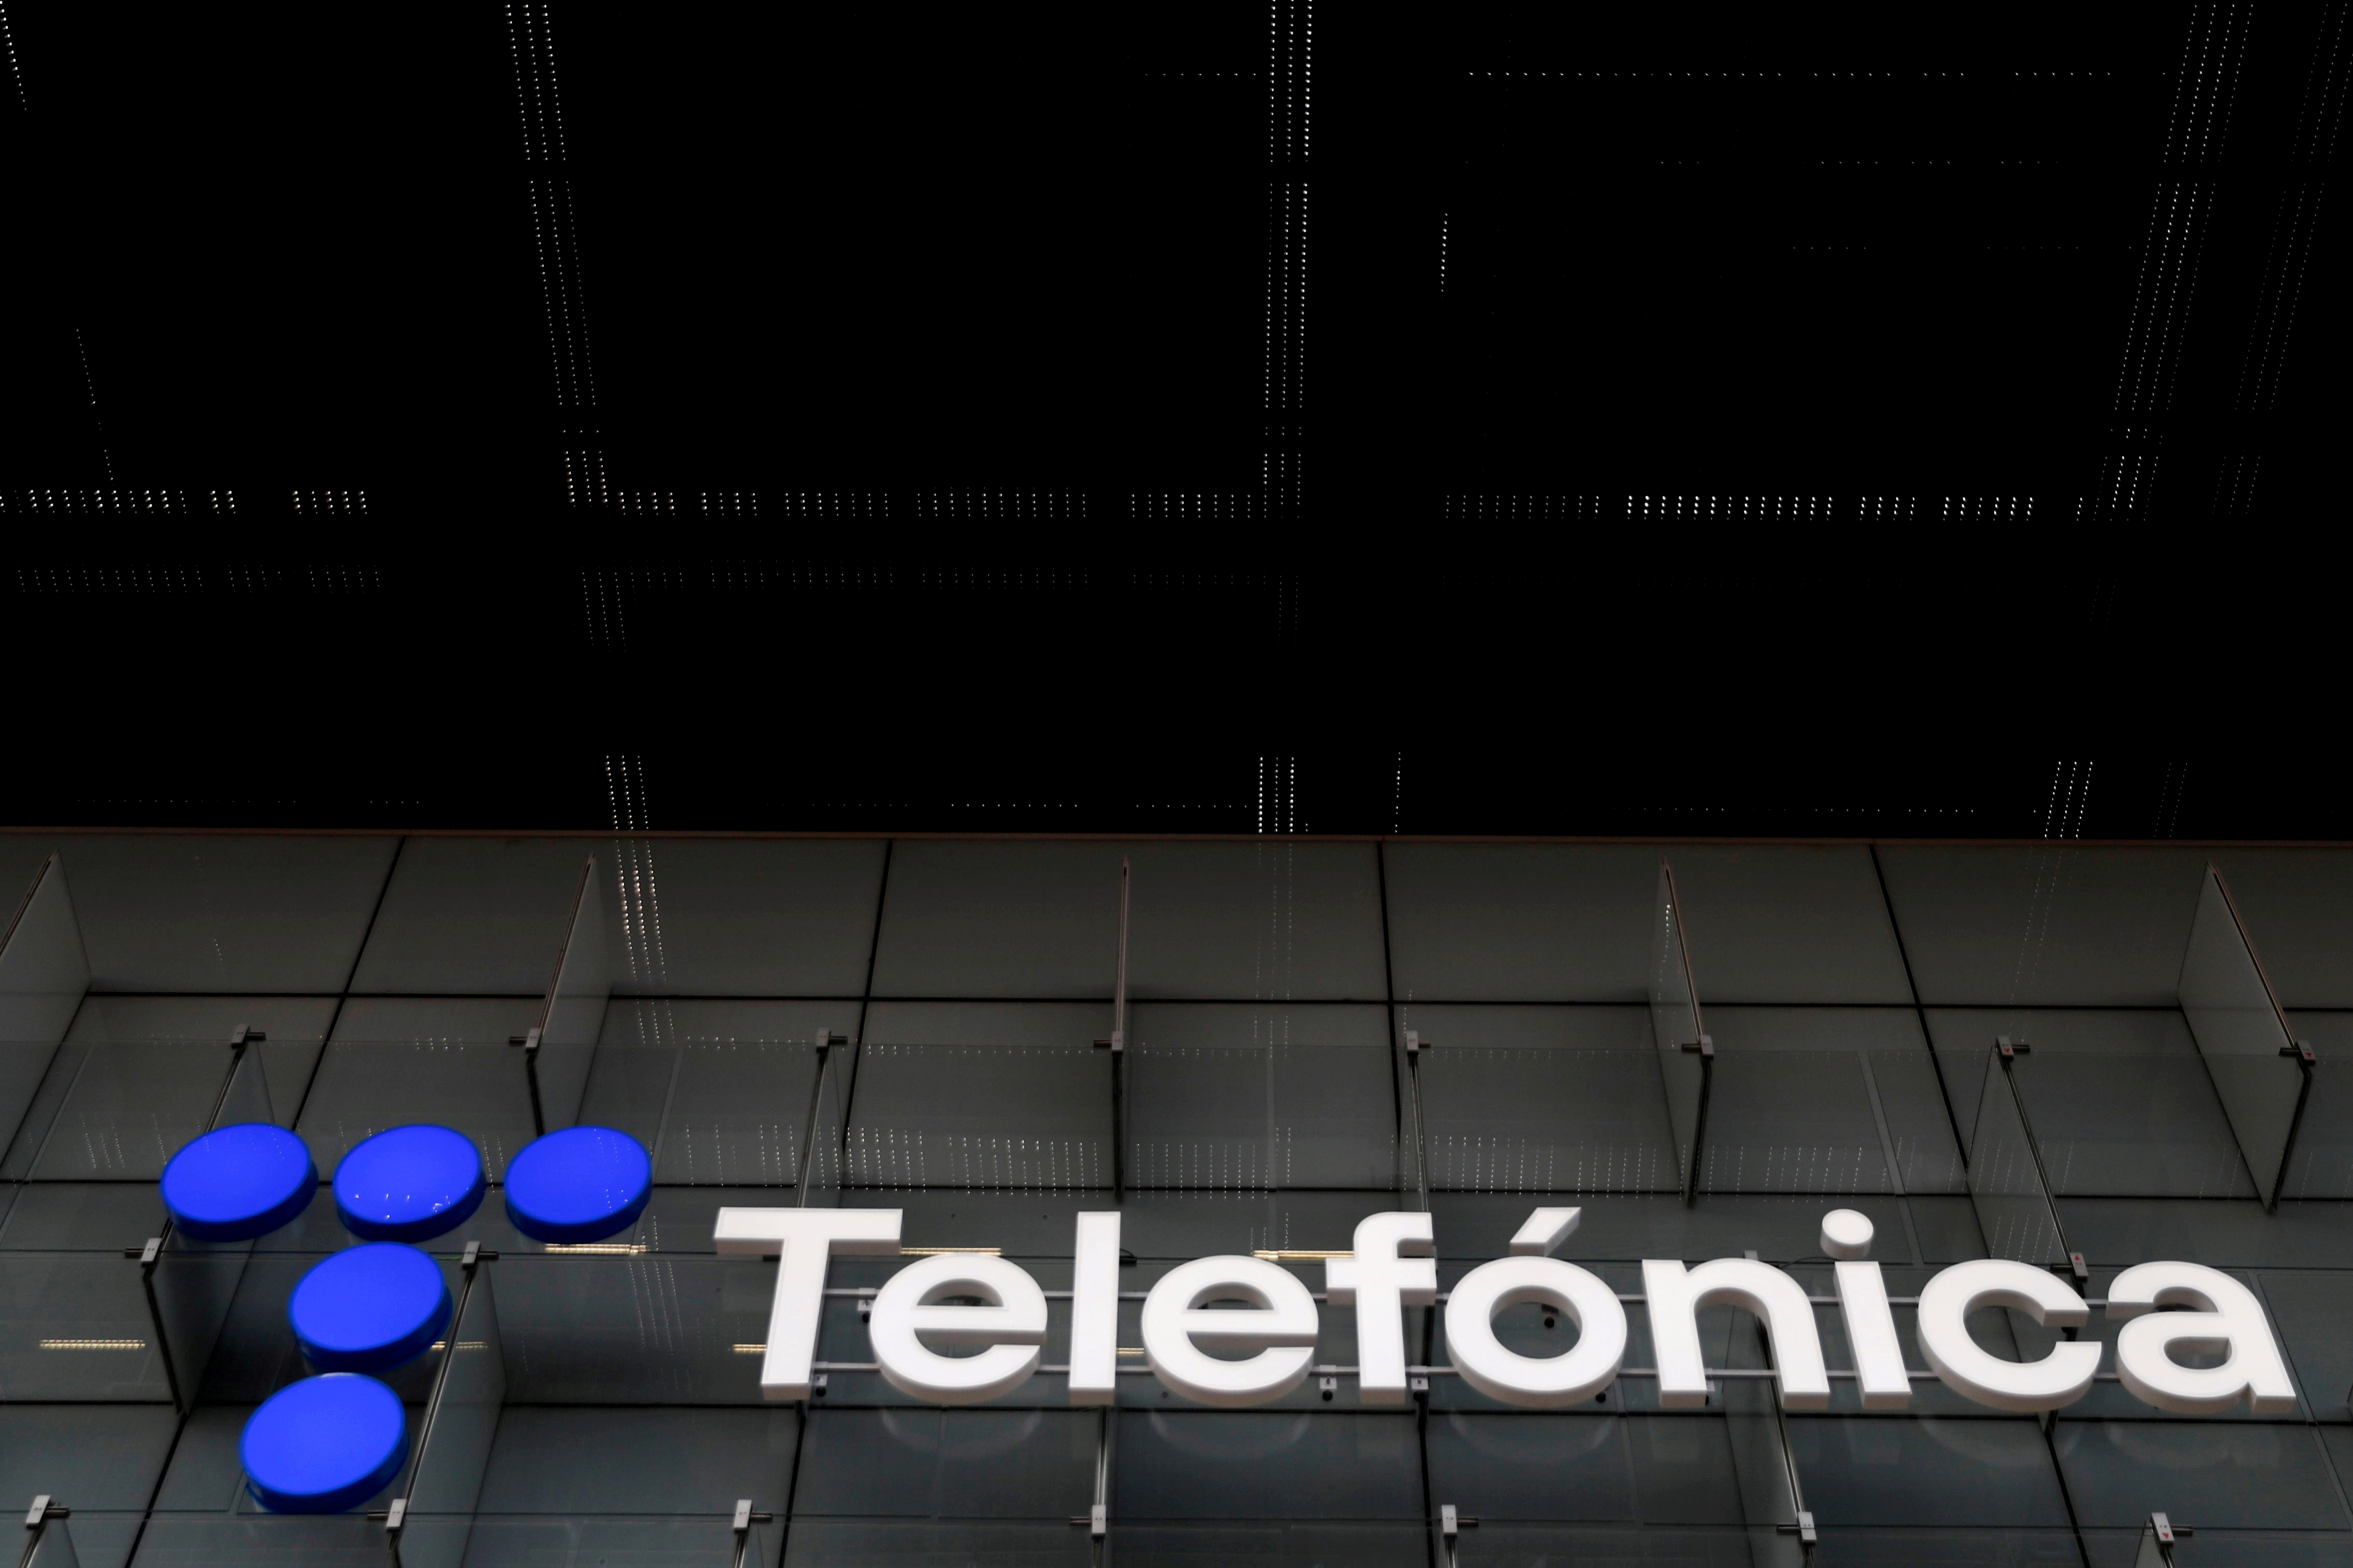 The logo of Spanish Telecom company Telefonica is seen at its headquarters in Madrid, Spain, May 12, 2021. REUTERS/Sergio Perez